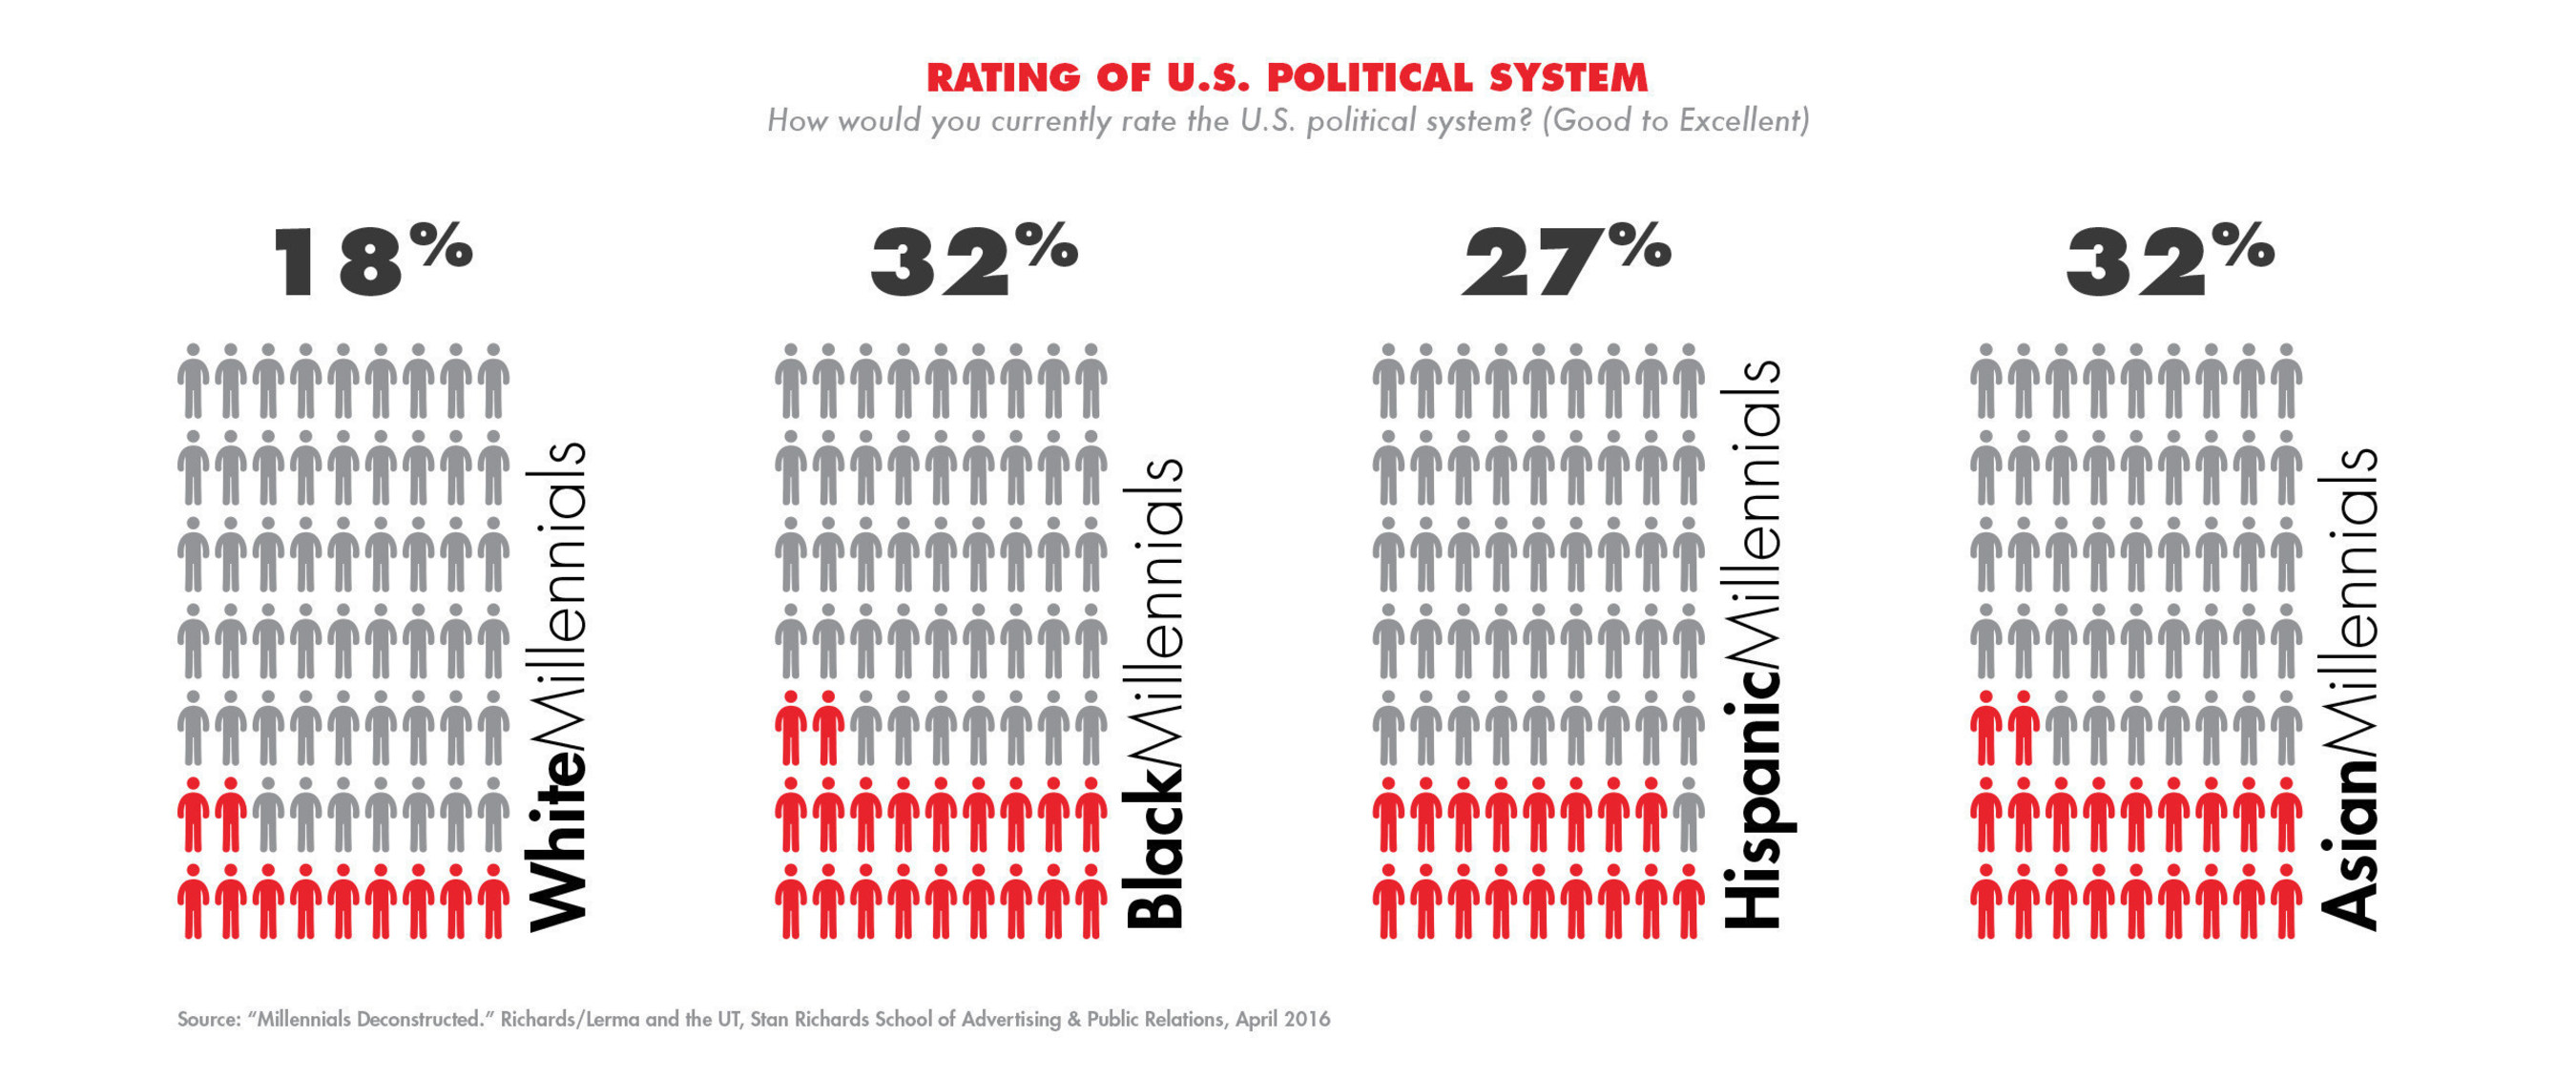 How would you rate the current U.S. political system?